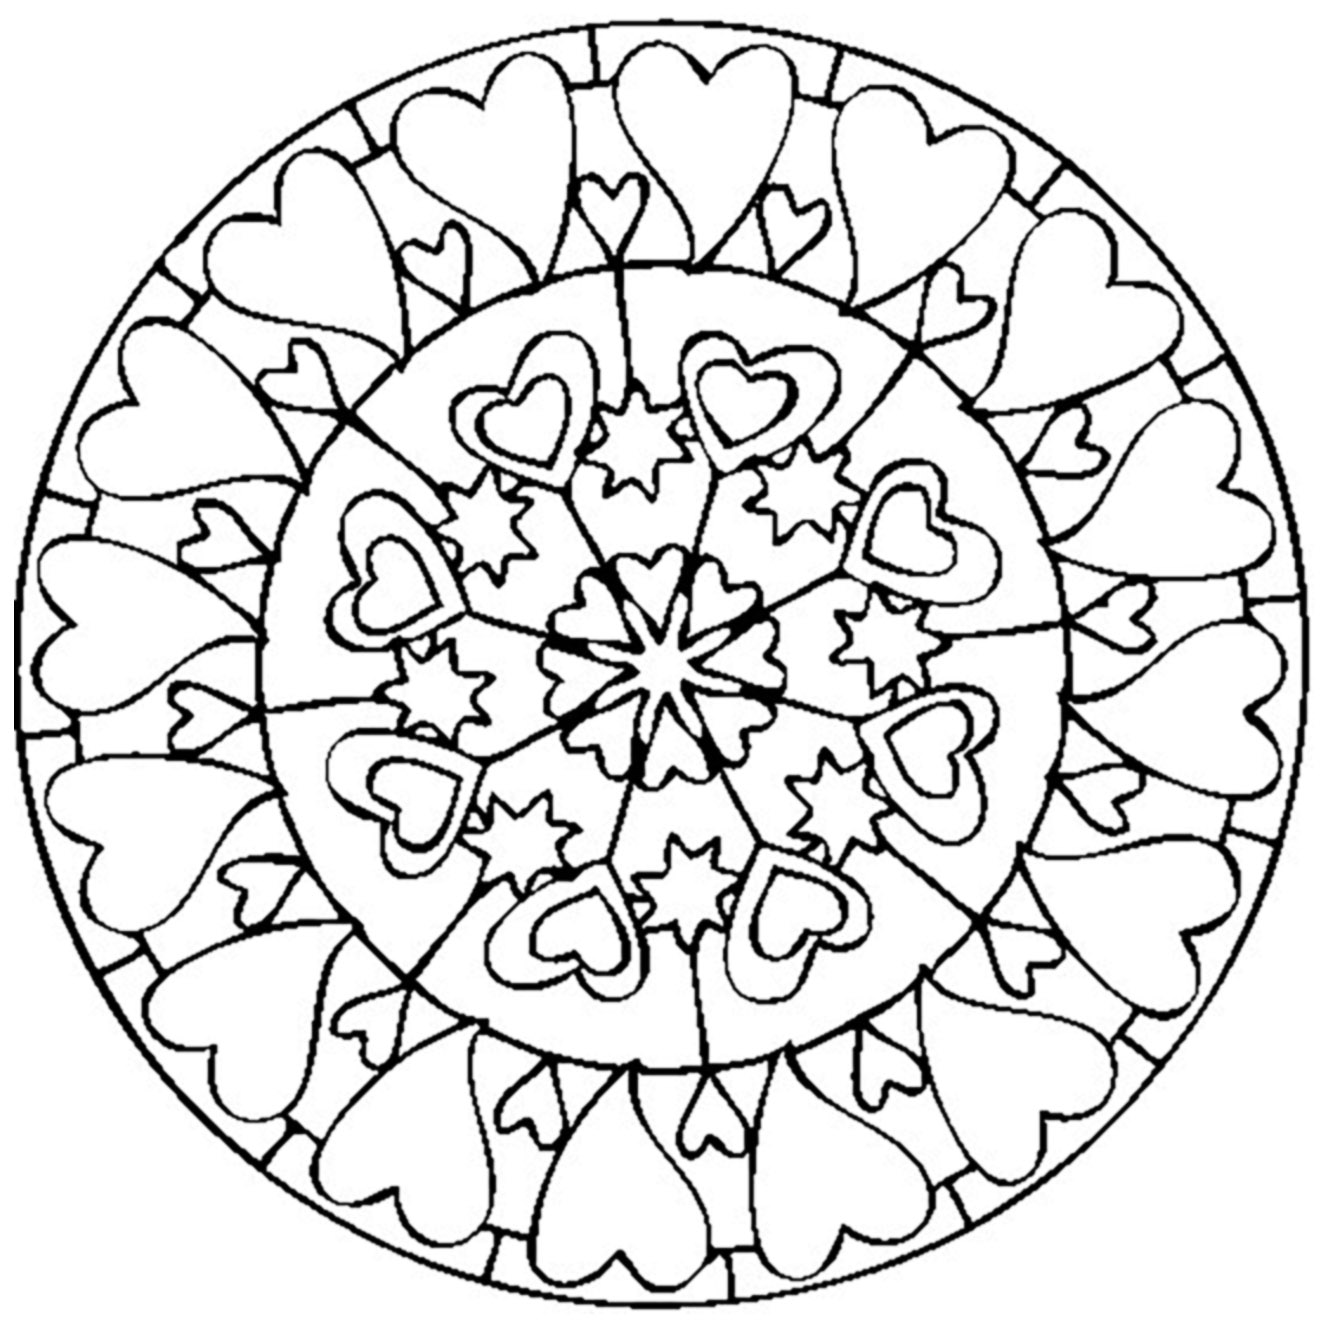 mandala colouring pages for kids simple mandala 18 mandalas coloring pages for kids to for pages mandala colouring kids